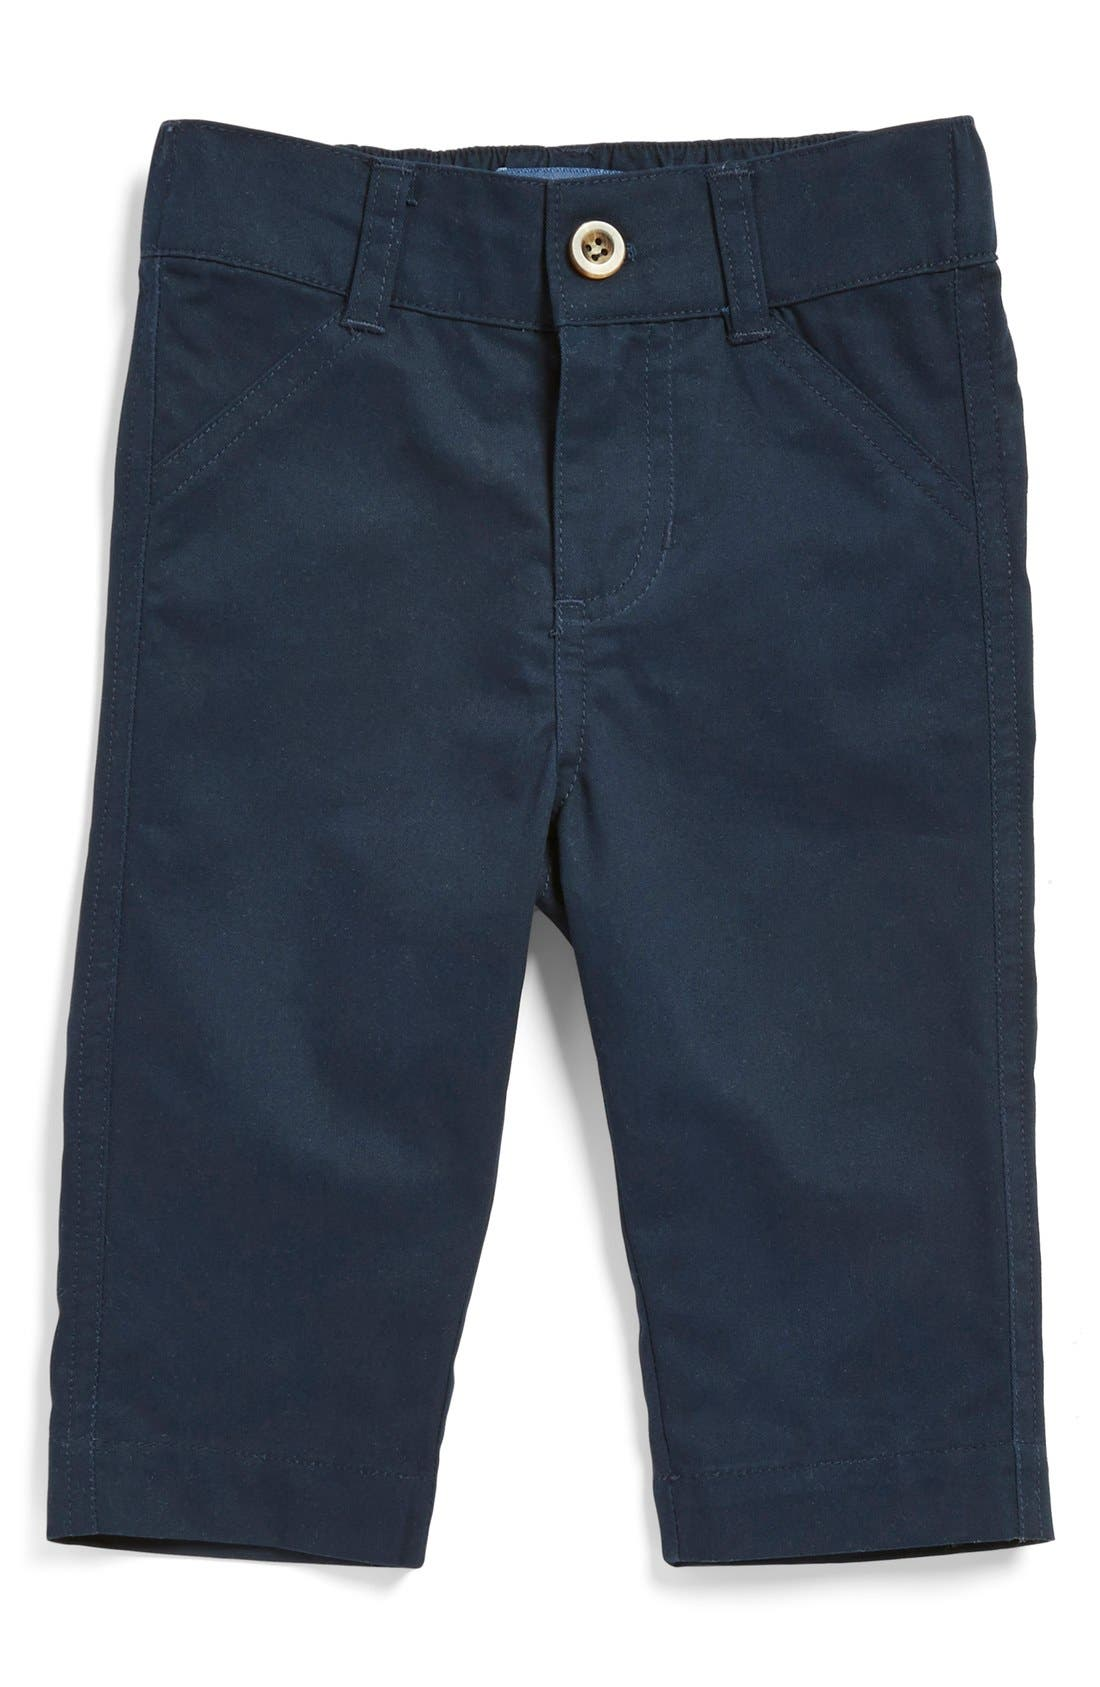 Main Image - Andy & Evan Flat Front Twill Pants (Baby Boys)